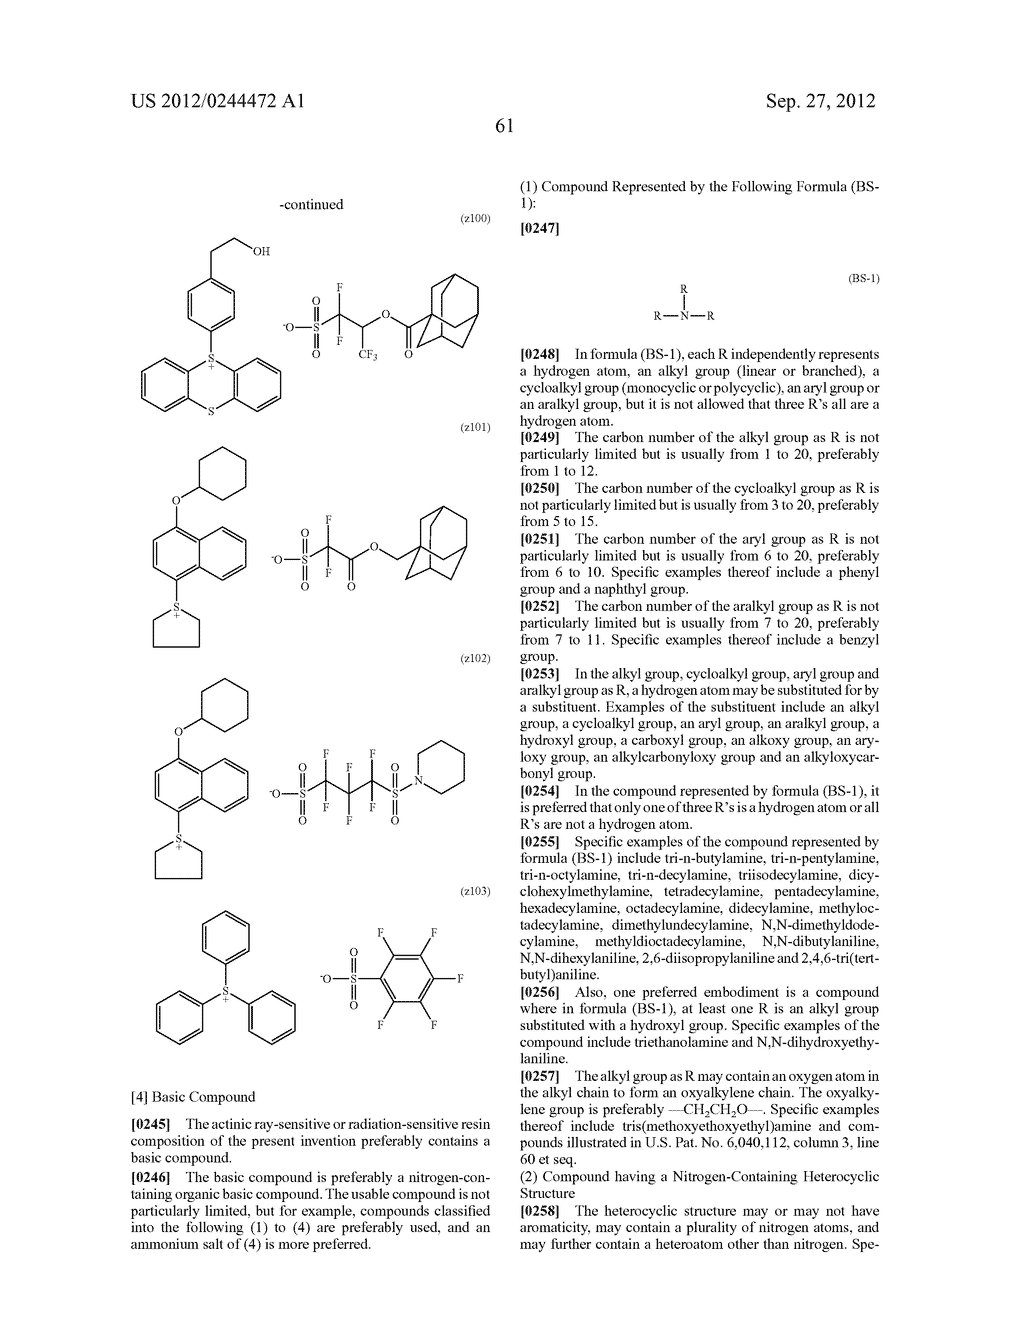 ACTINIC RAY-SENSITIVE OR RADIATION-SENSITIVE RESIN COMPOSITION, FILM     FORMED USING THE COMPOSITION AND PATTERN FORMING METHOD USING THE SAME - diagram, schematic, and image 62